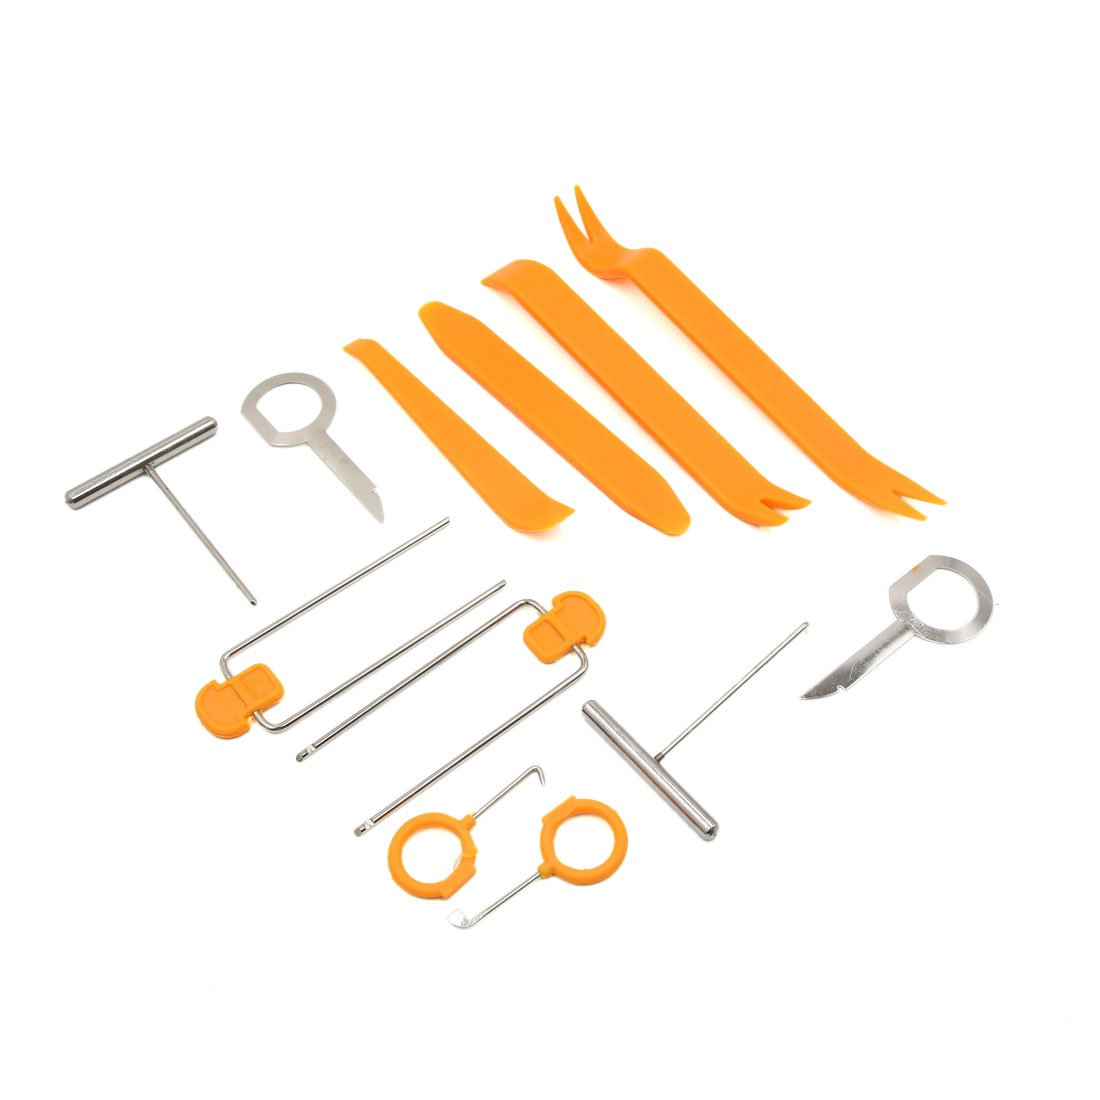 uxcell 12 in 1 Orange Auto Car Door Audio System Video GPS Panel Trim Dismantle Removal Tools Kit